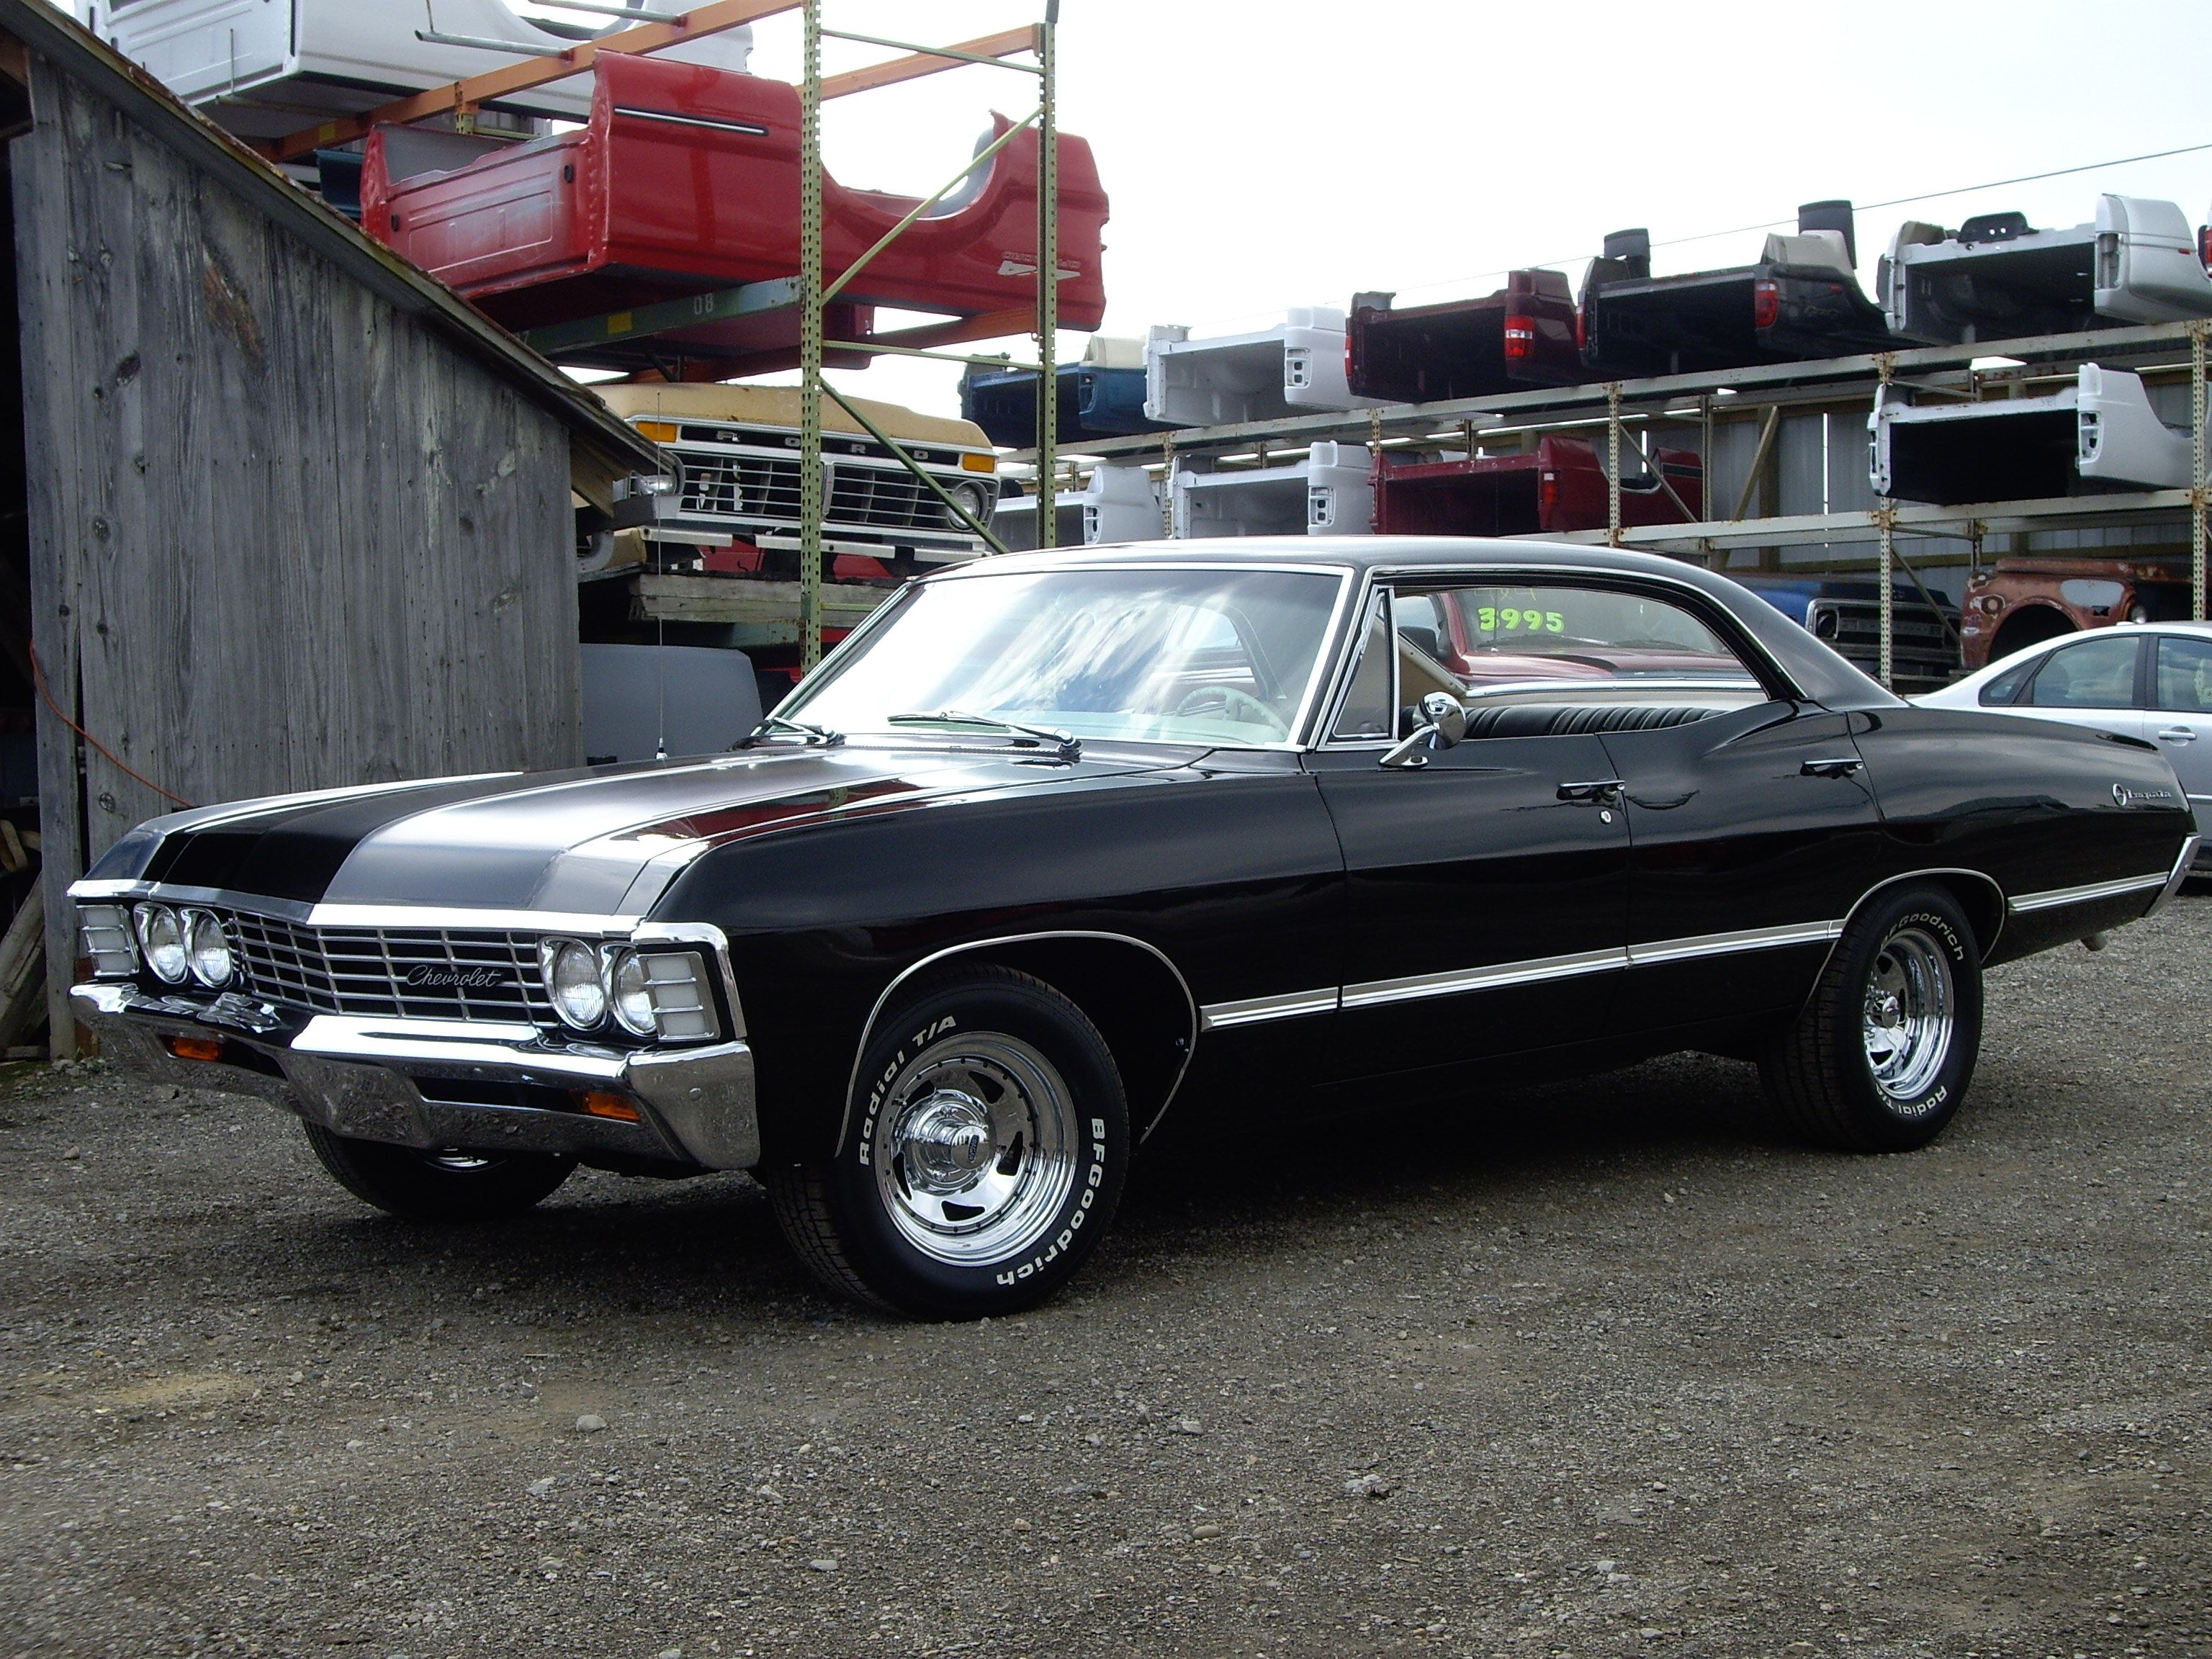 Iconic Tv Movie Cars Chevrolet Impala 1967 Chevy Impala 1967